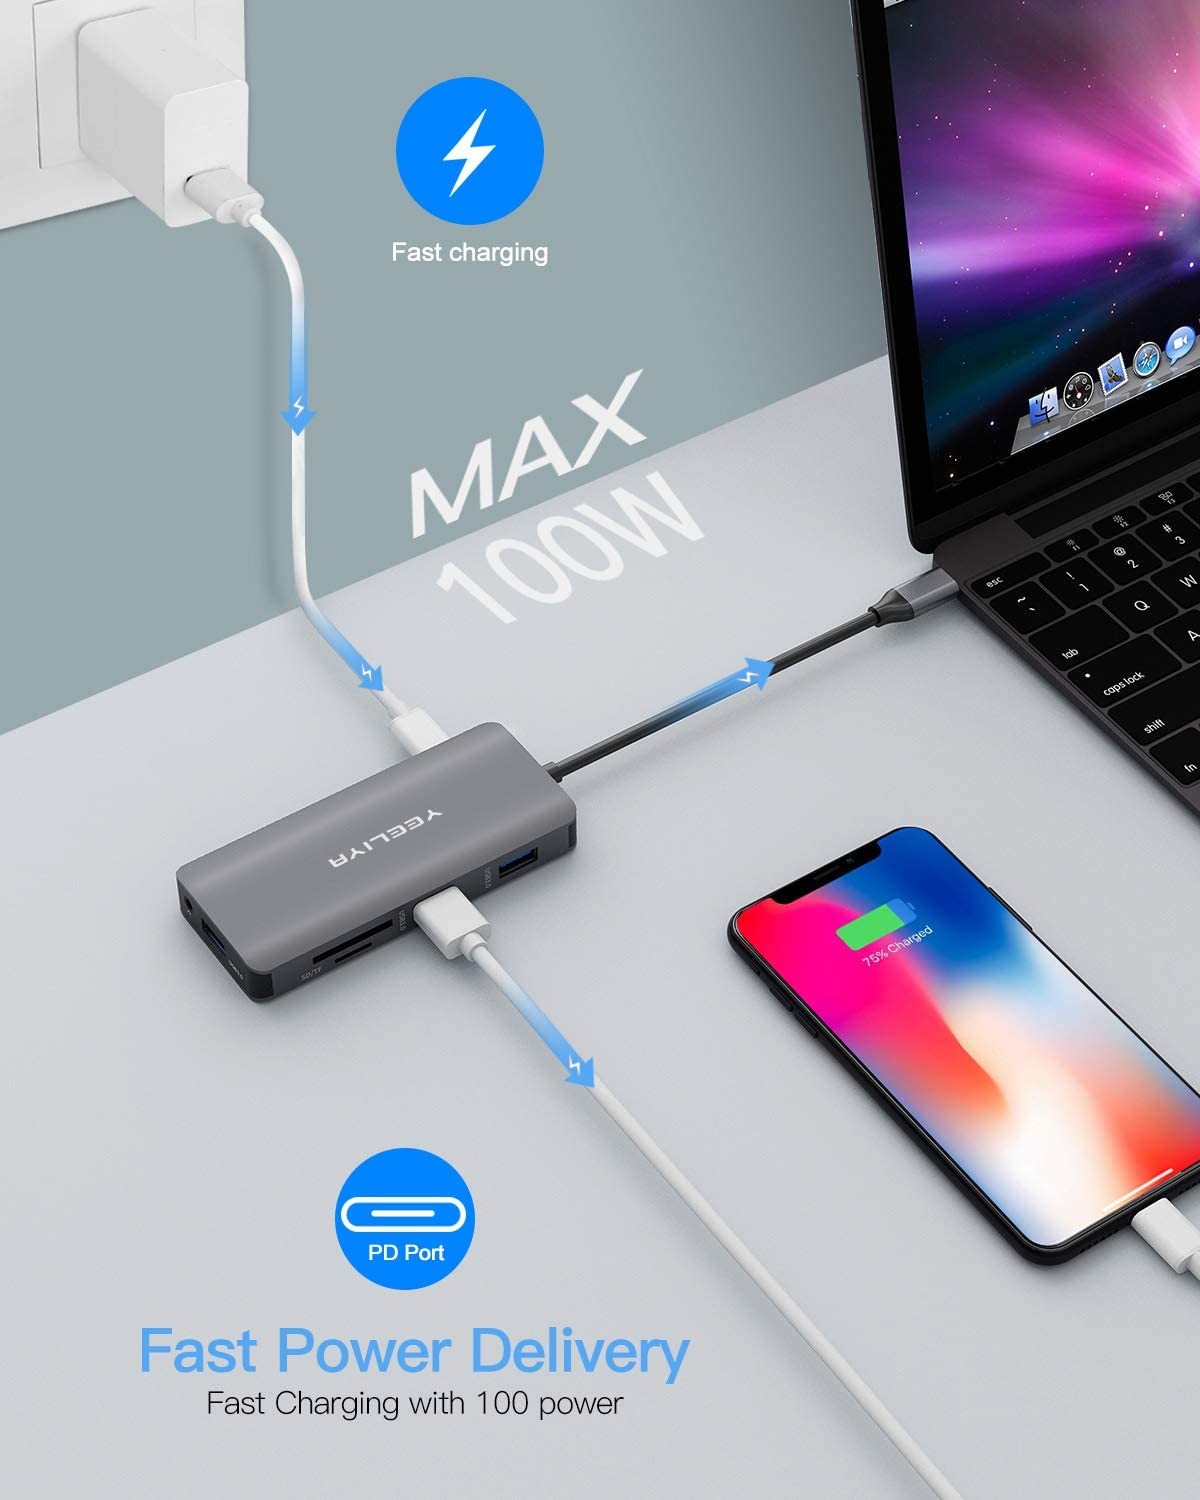 USB C Hub Multiport Adapter 9-in-1 Dongle USB-C Hub ,USB c to HDMI/VGA ,2 USB 3.0 Ports, SD&Micro SD Card, 3.5mm Audio Port, PD Charging for MacBook/Pro IPad and HP Notebook Other Type C Laptops